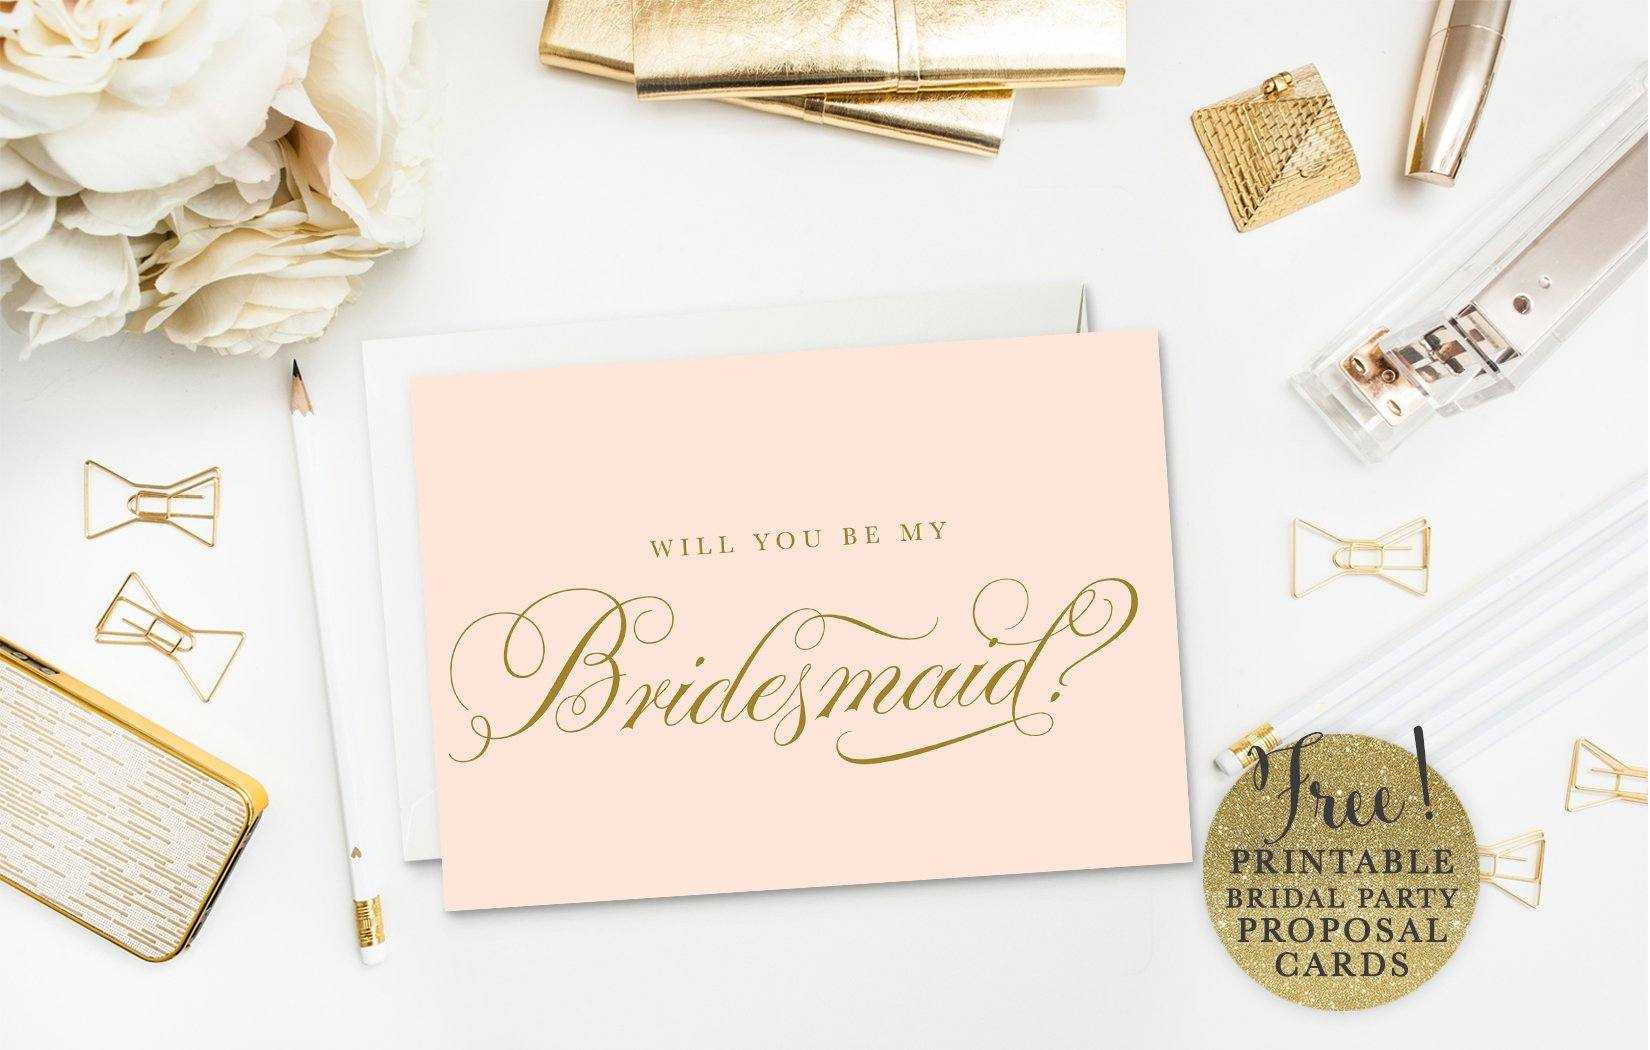 10 Will You Be My Bridesmaid? Cards (Free & Printable) Throughout Will You Be My Bridesmaid Card Template